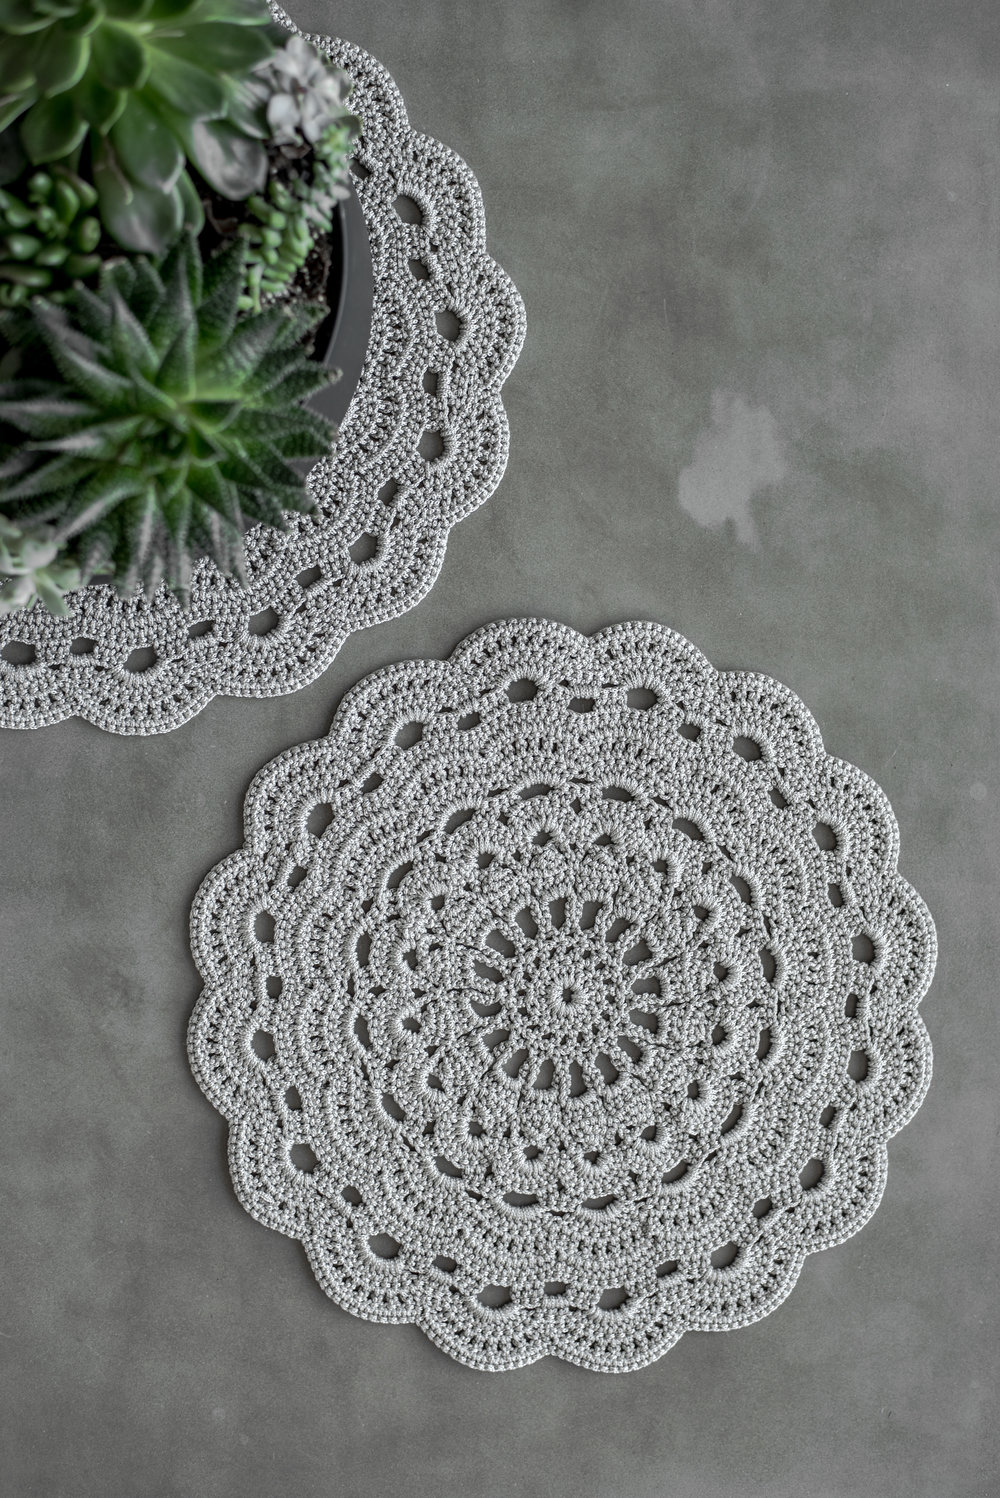 Hand Crochet Placemats In Silver Creating Comfort Lab